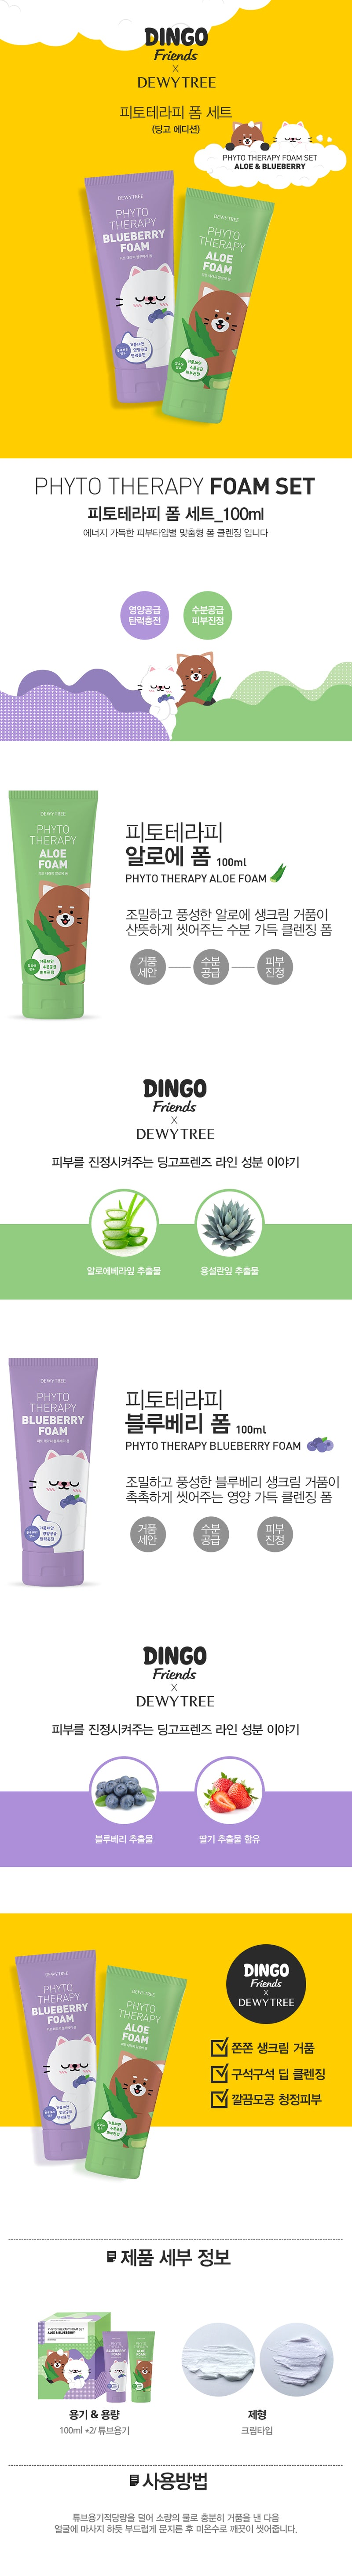 Dewytree Phyto Therapy Foam Set Aloe & Blueberry